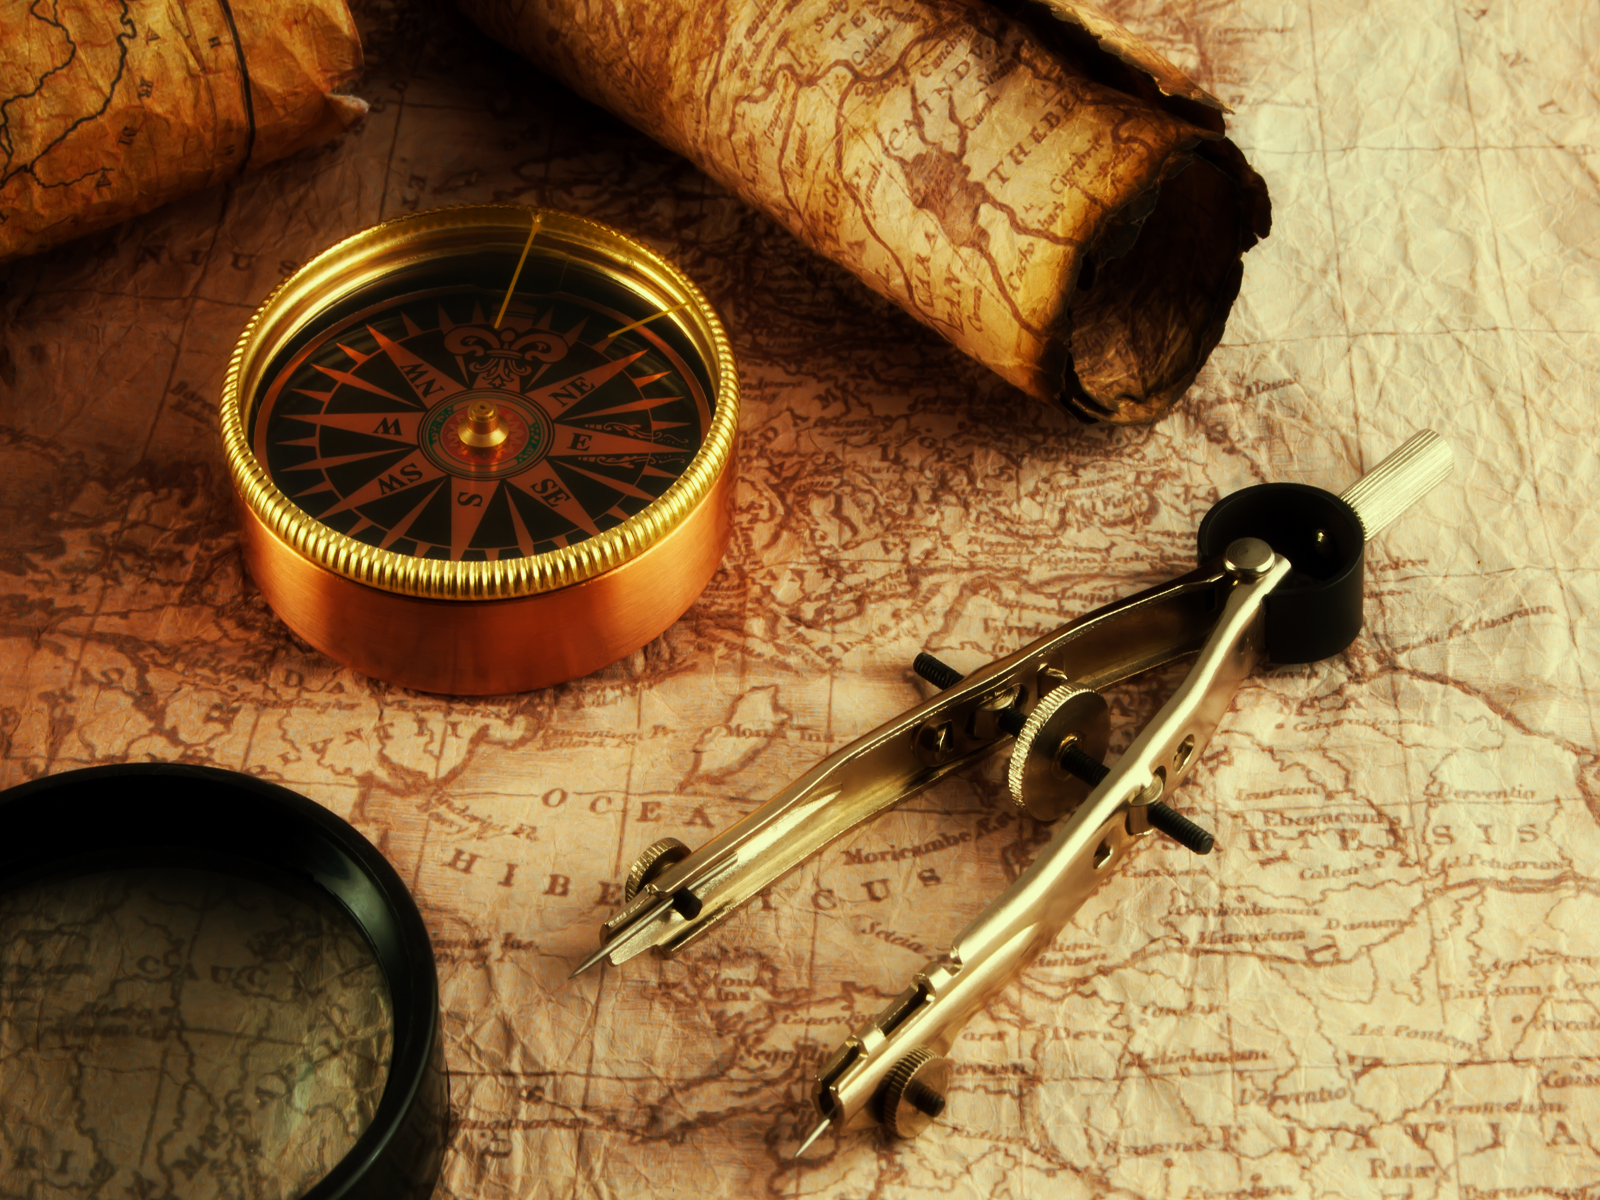 High Resolution Compass Wallpapers #27211679 Wallpapers